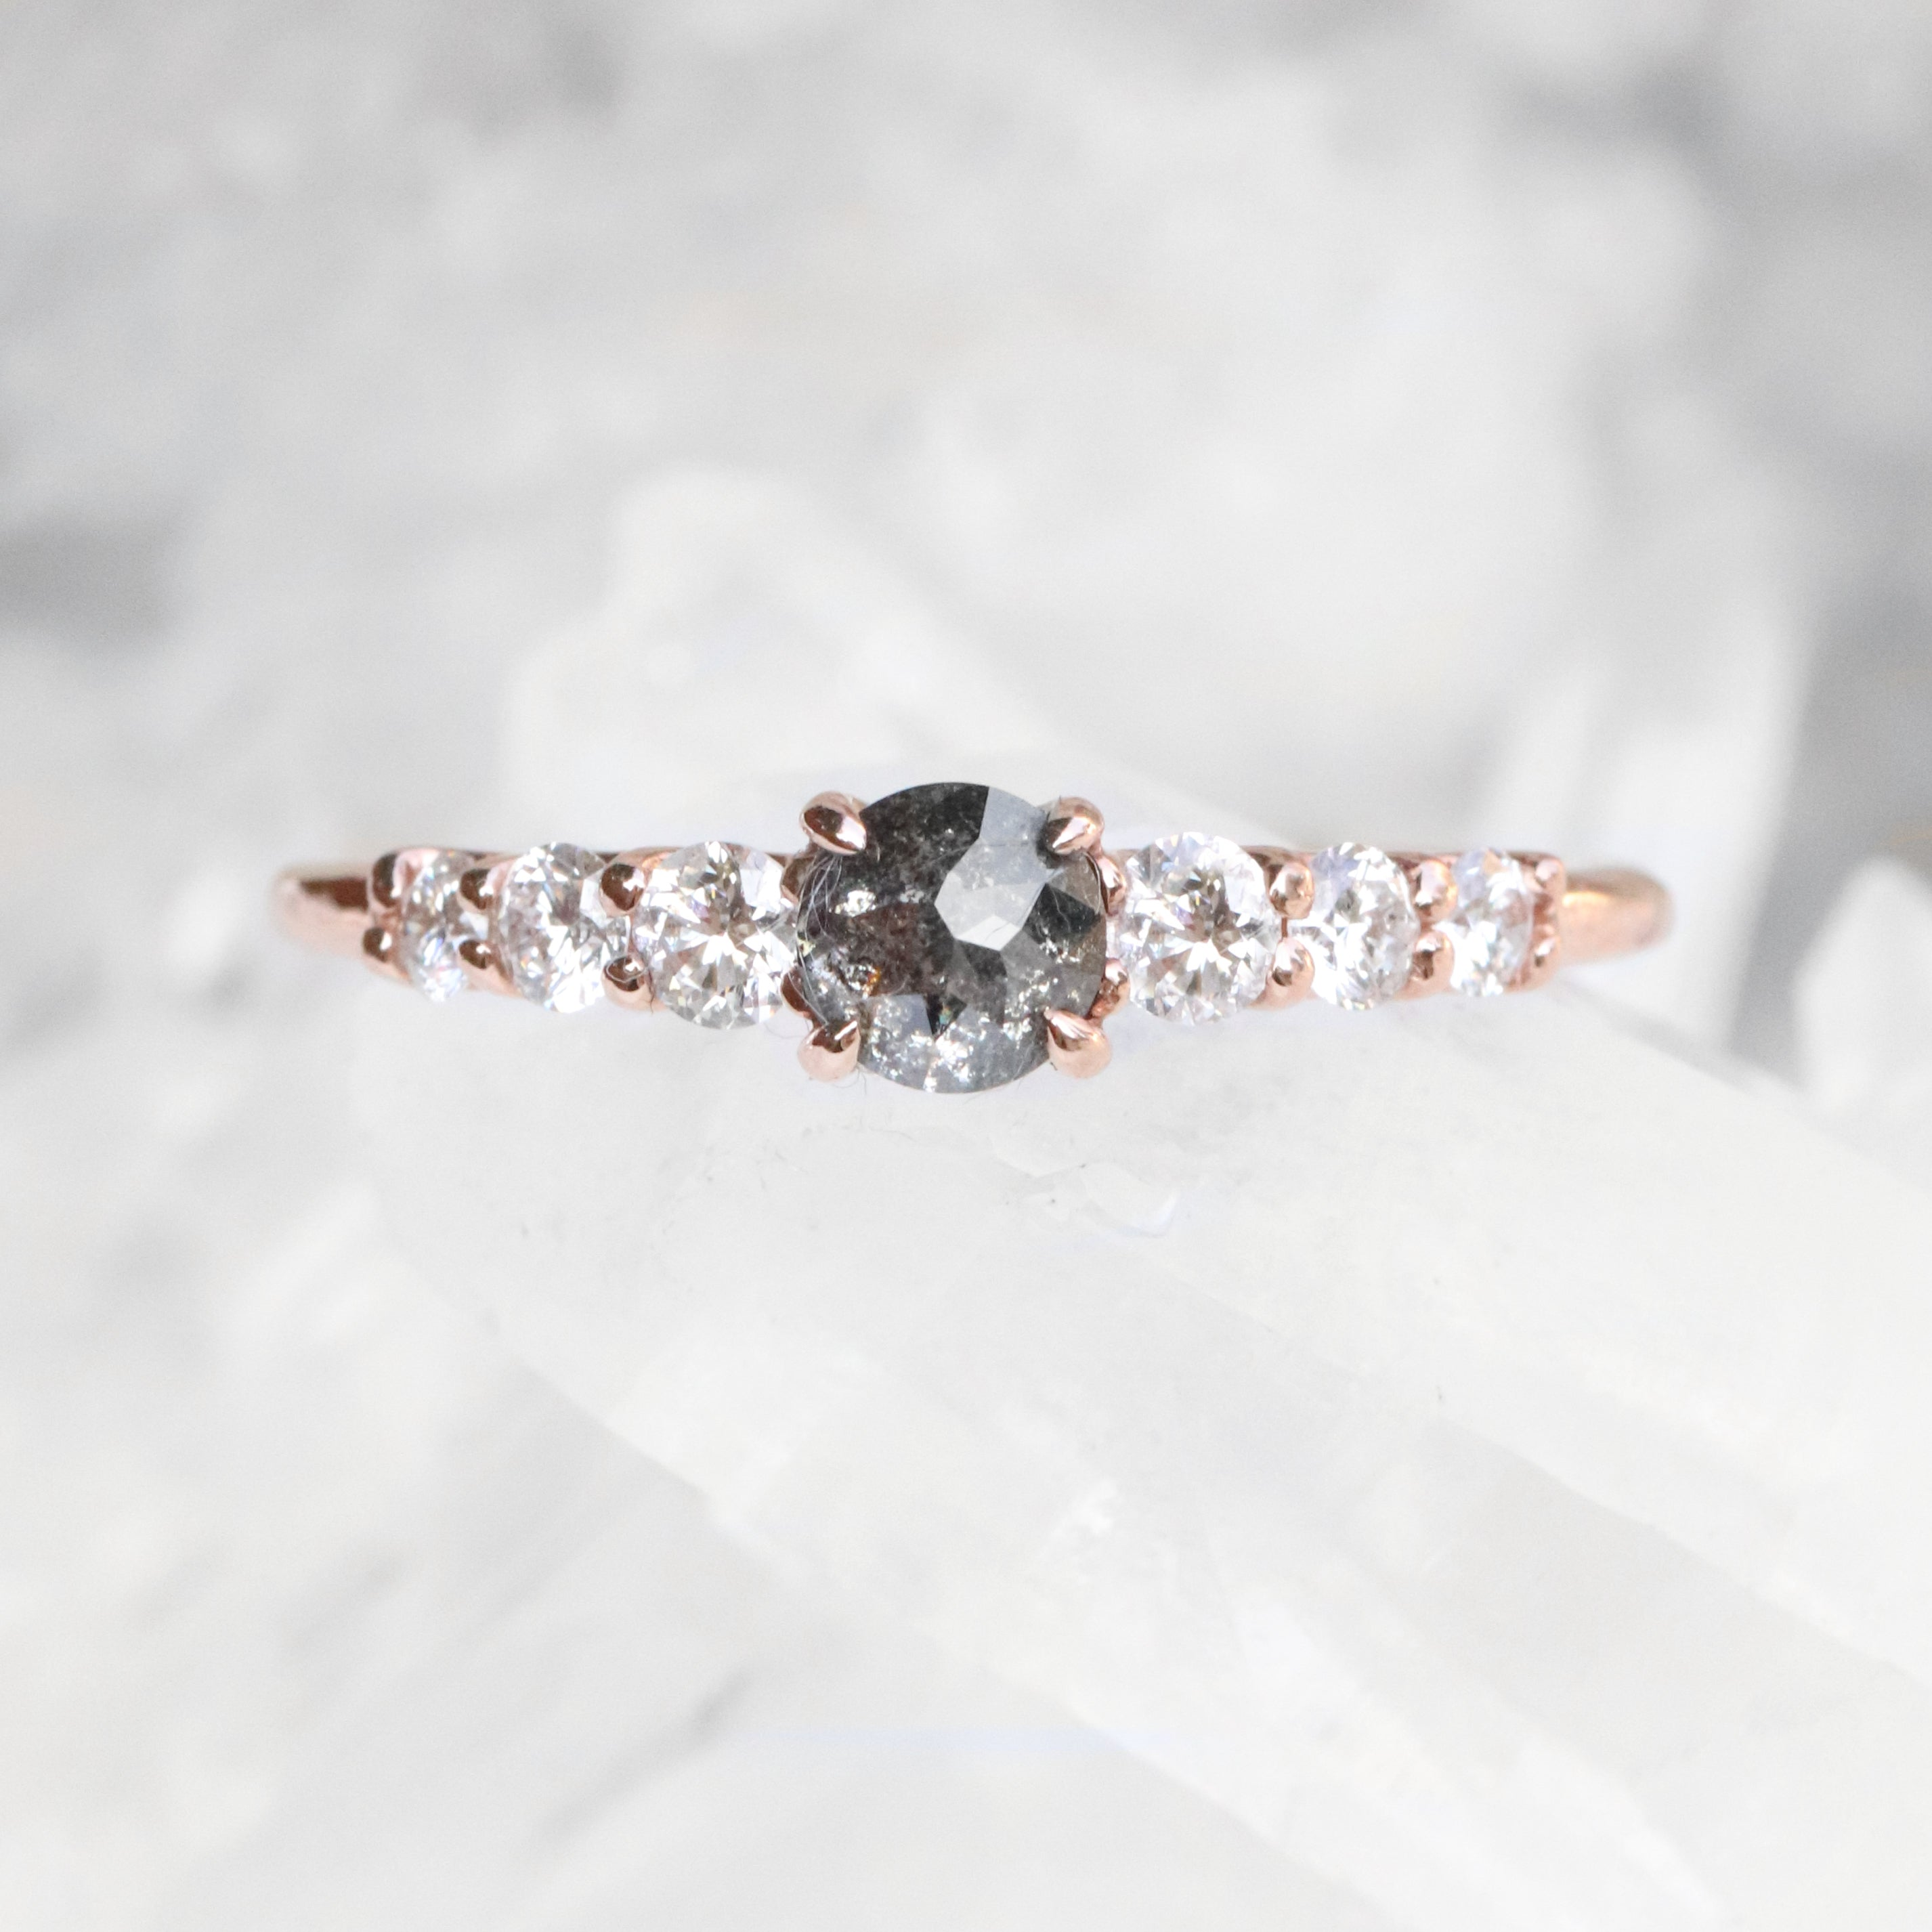 Nina ring with .4 carat round celestial diamond and diamonds in 10k rose gold - ready to size and ship - Salt & Pepper Celestial Diamond Engagement Rings and Wedding Bands  by Midwinter Co.